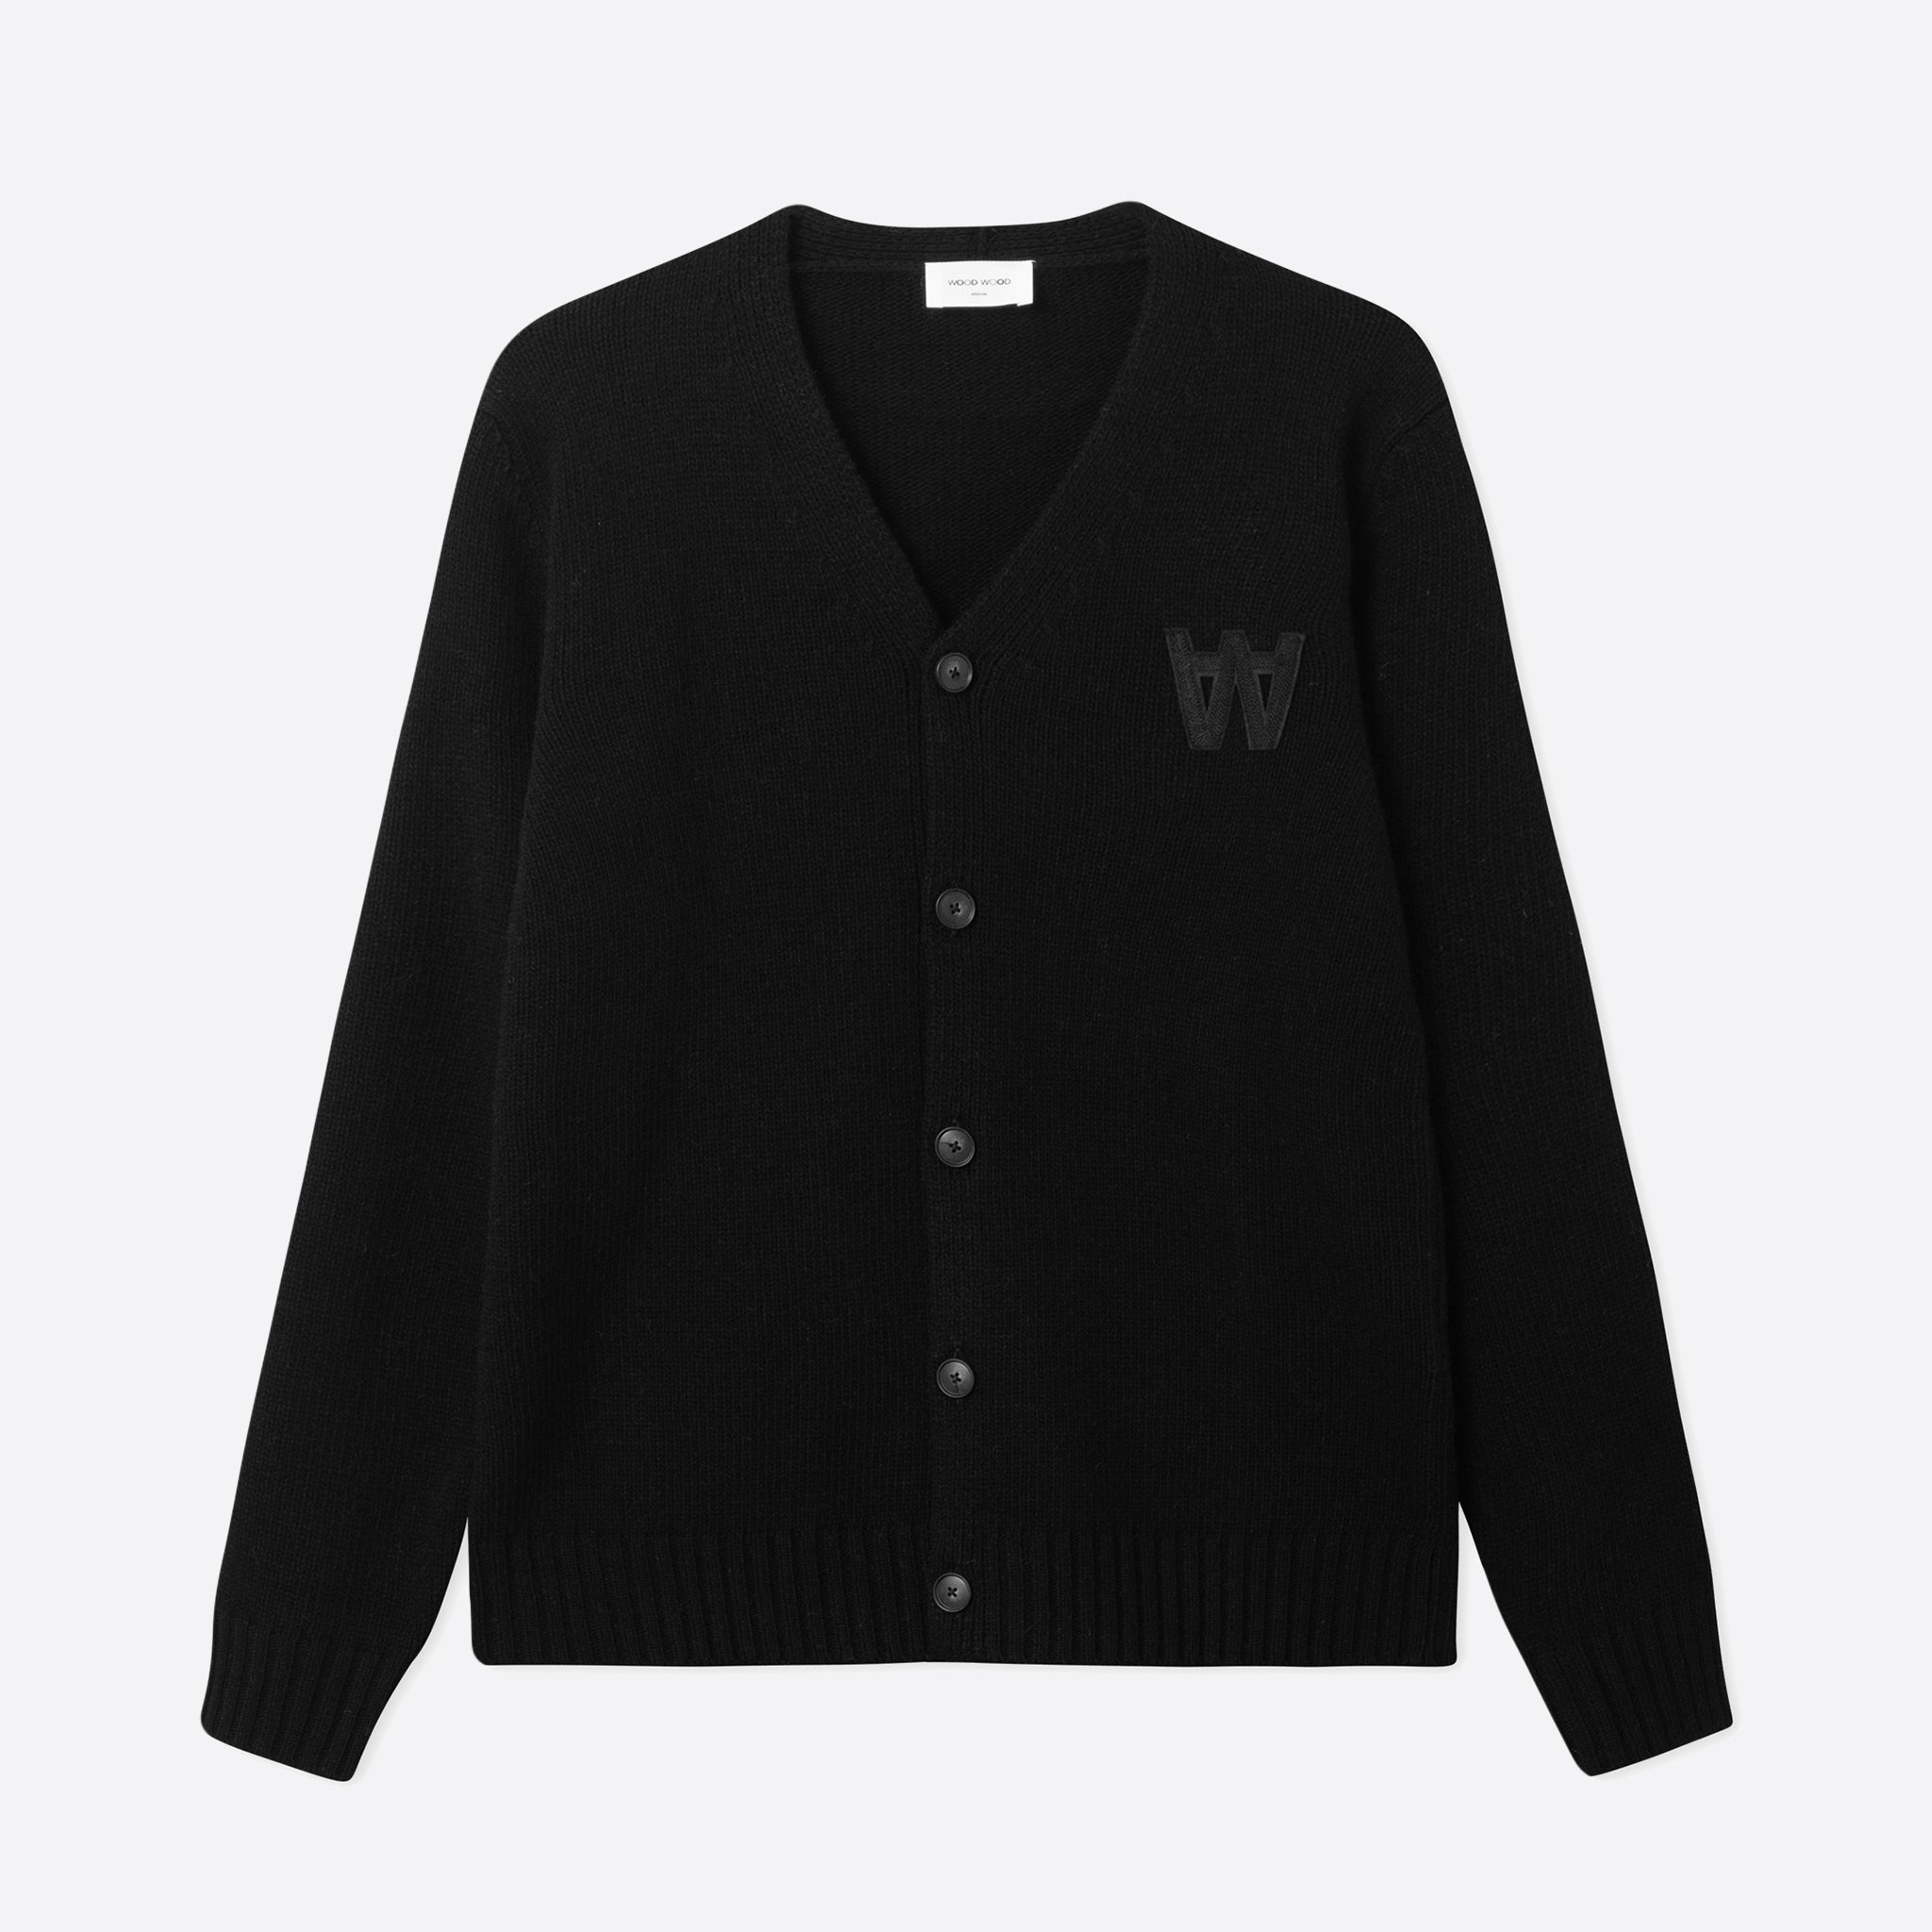 Wood Wood Kalle Cardigan in Black